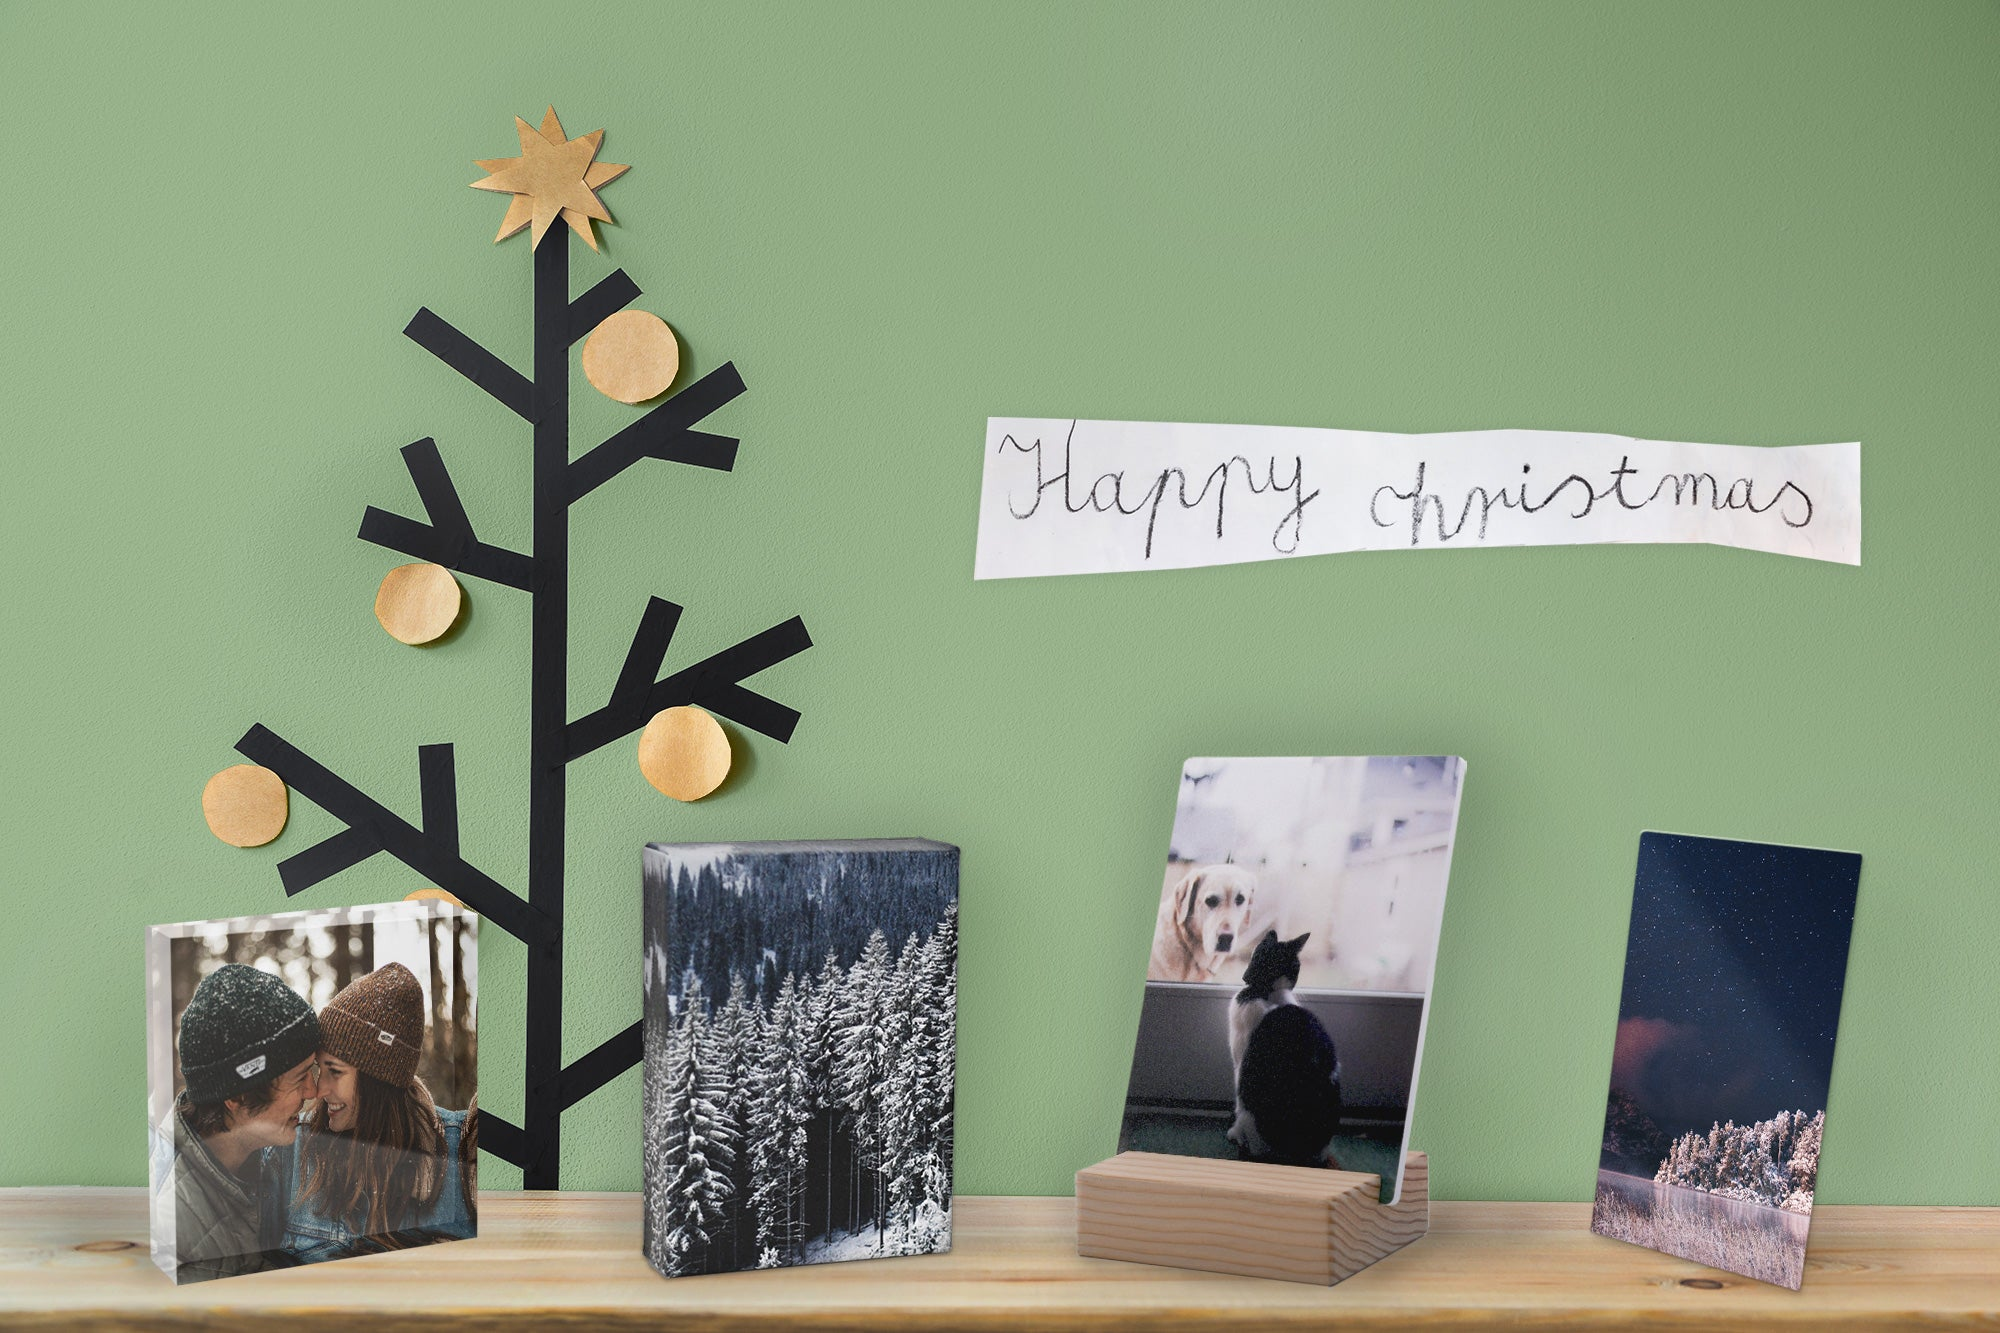 Top 4 Desk Photo Gift Ideas